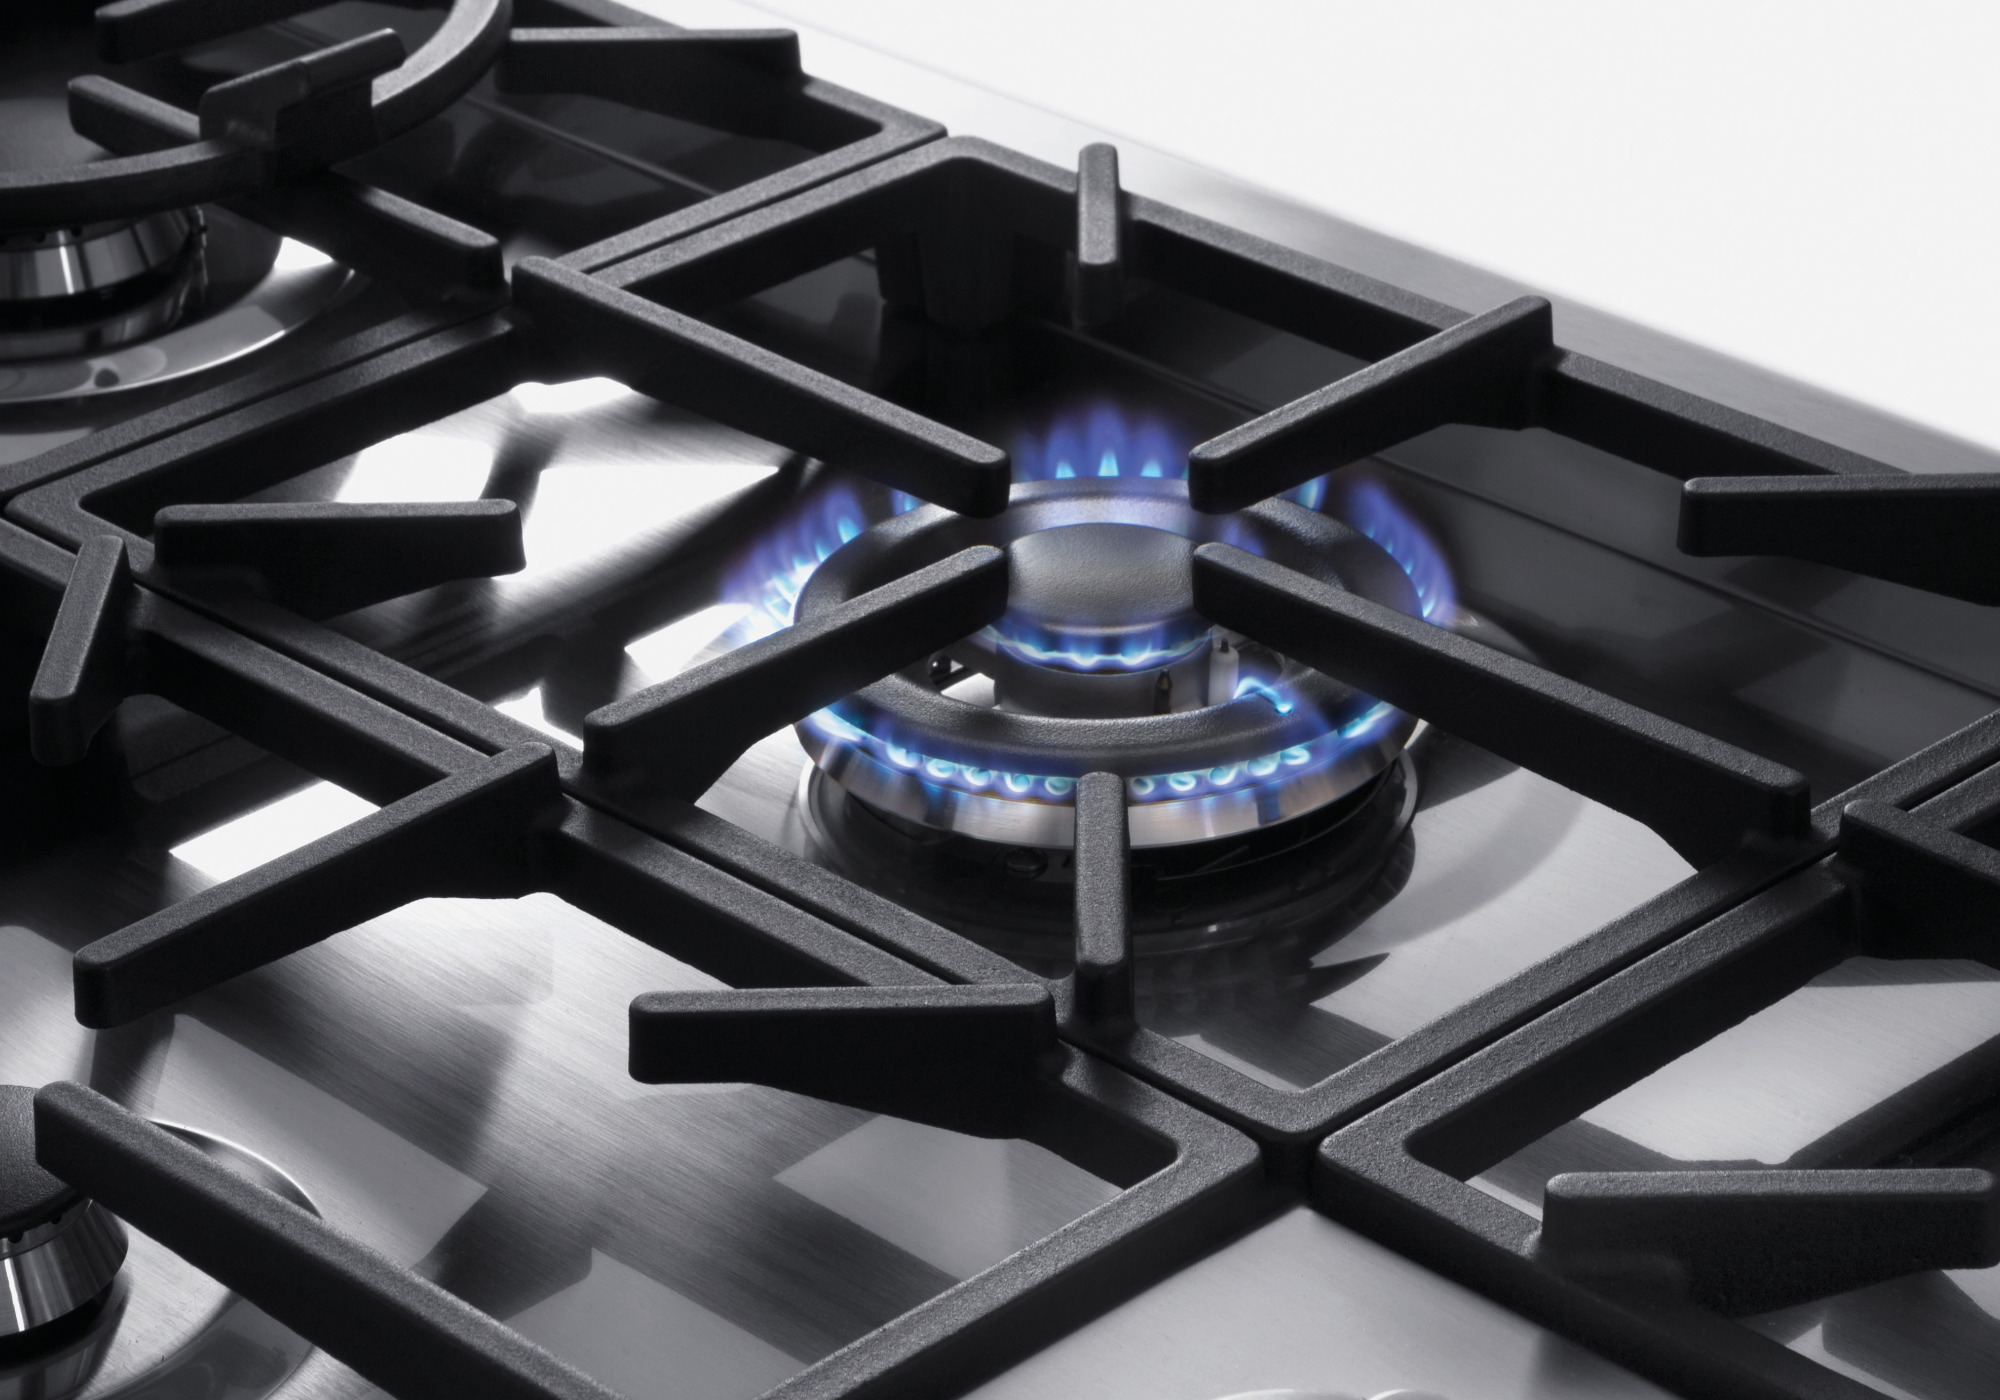 Cooker hob Foster Milano 7638 000